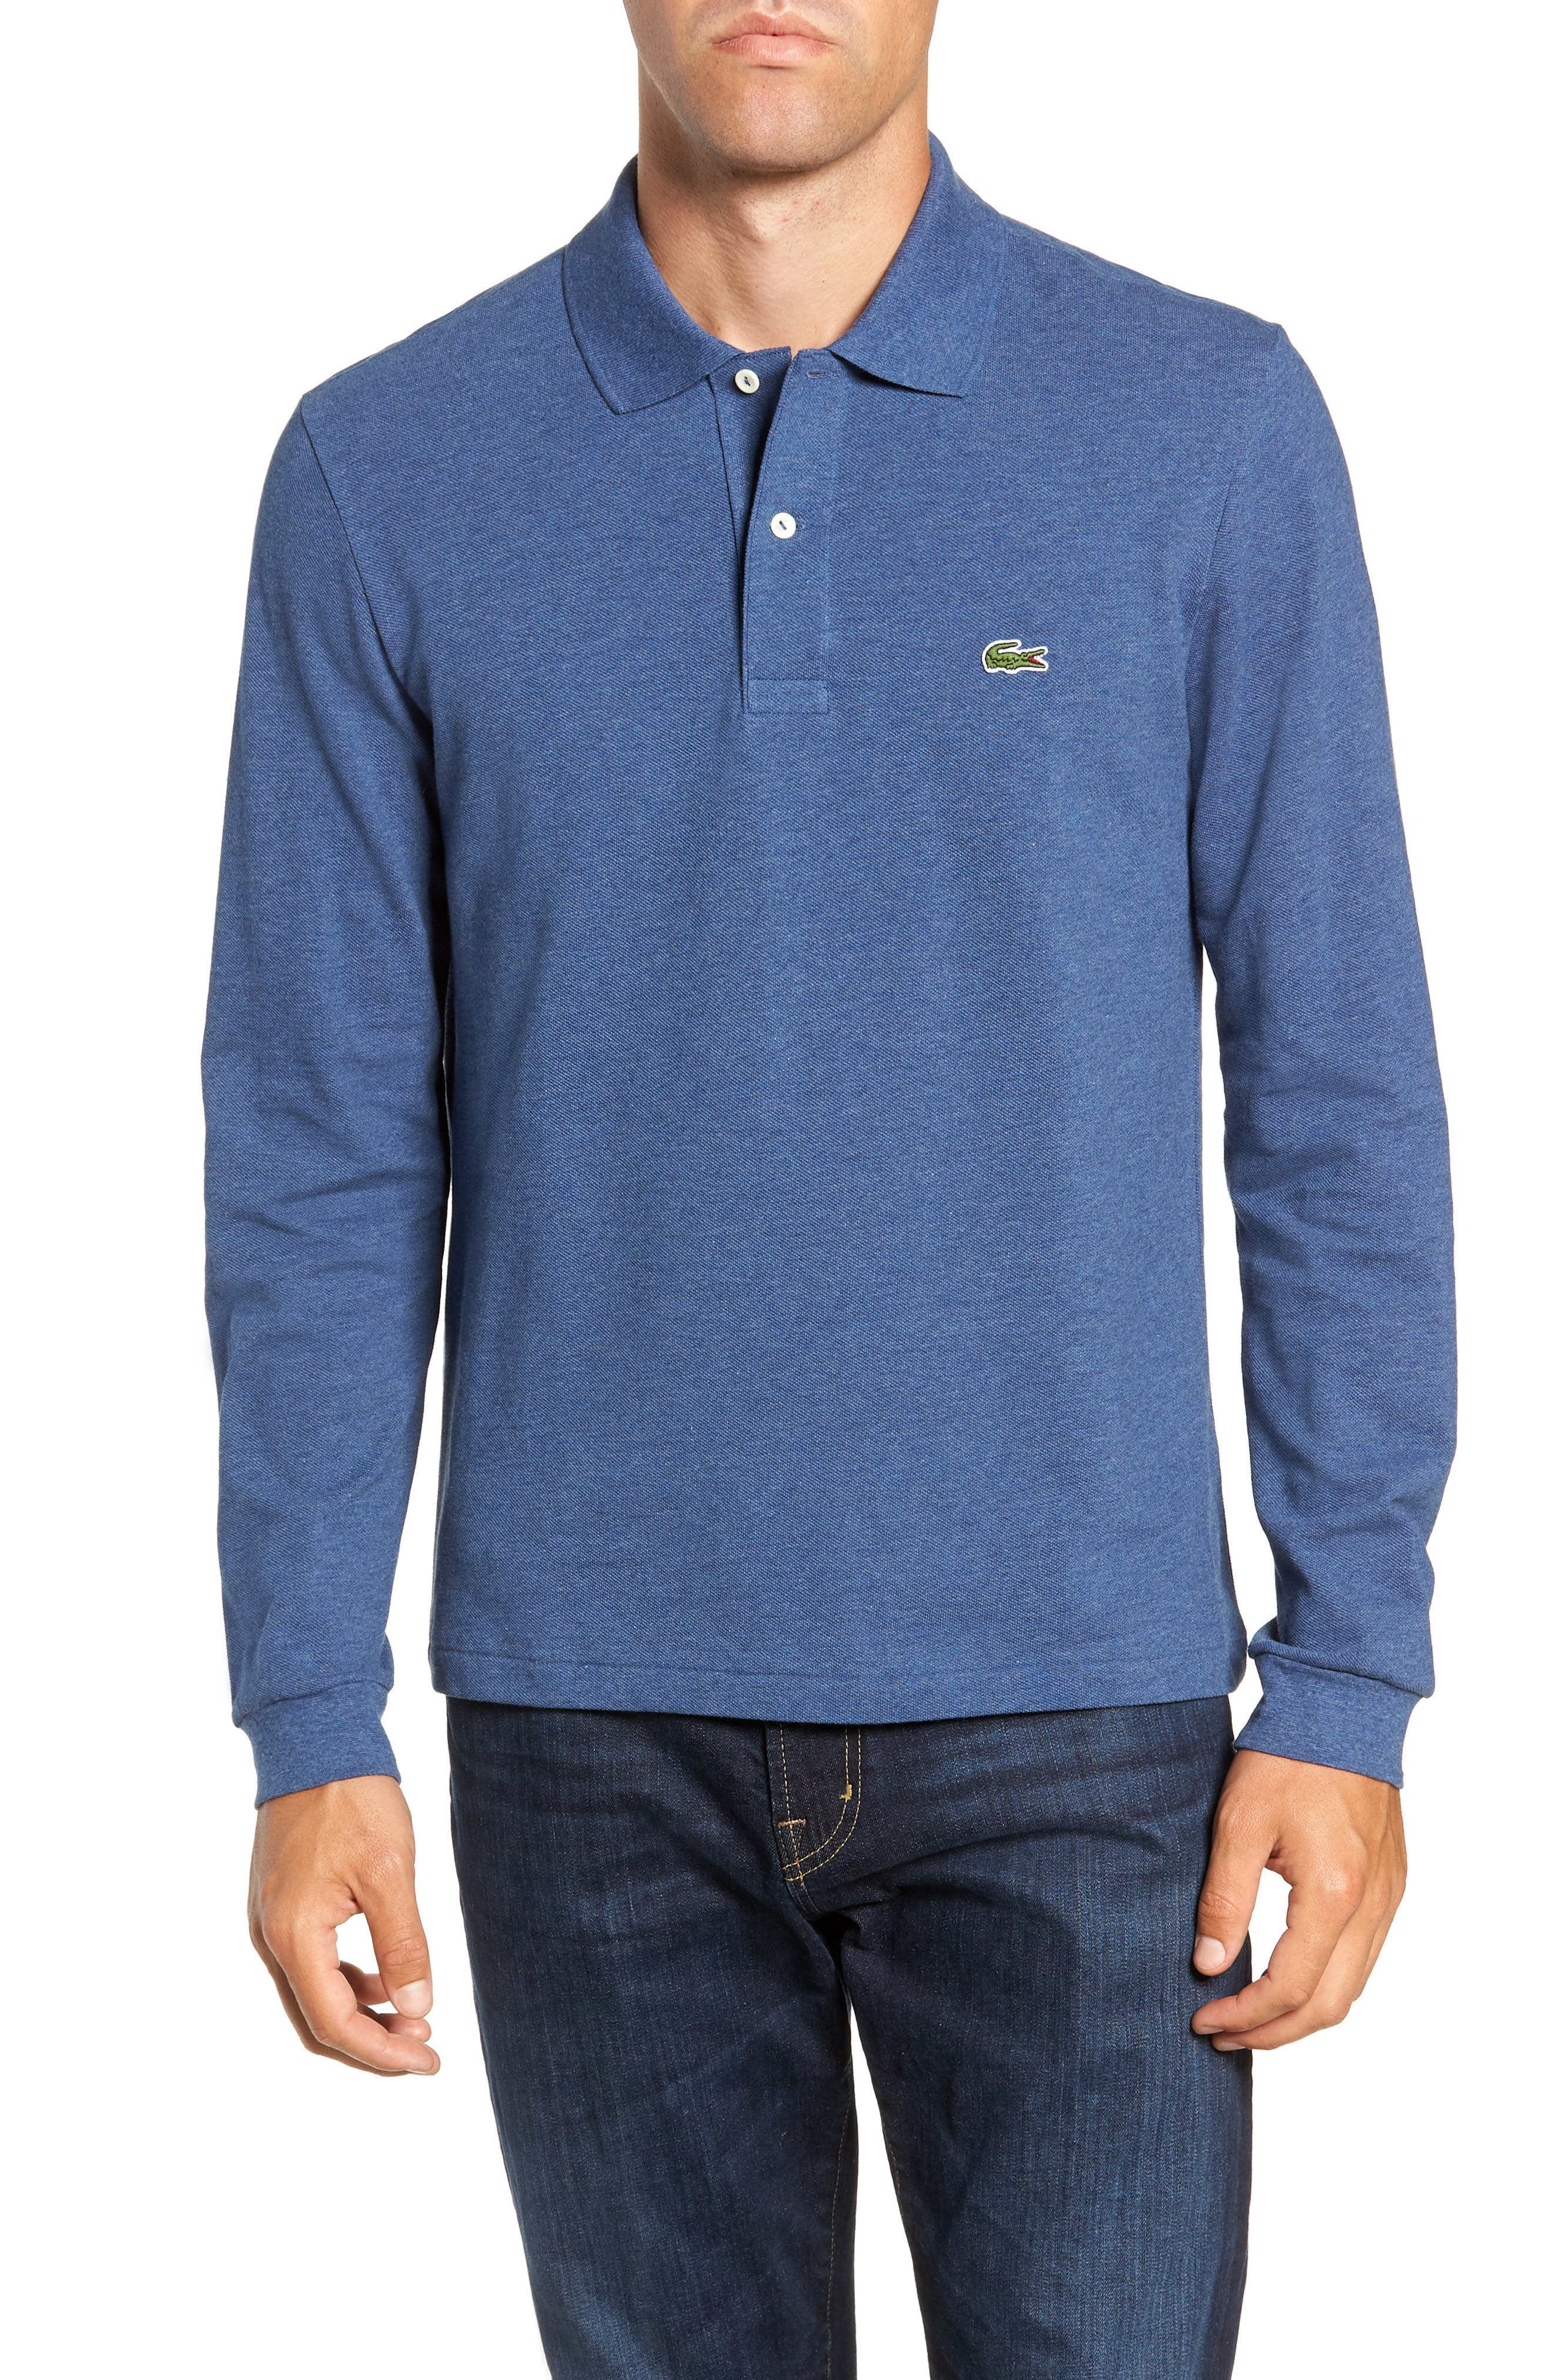 LACOSTE, Long Sleeve Piqué Polo, Main thumbnail 1, color, CRUISE CHINE